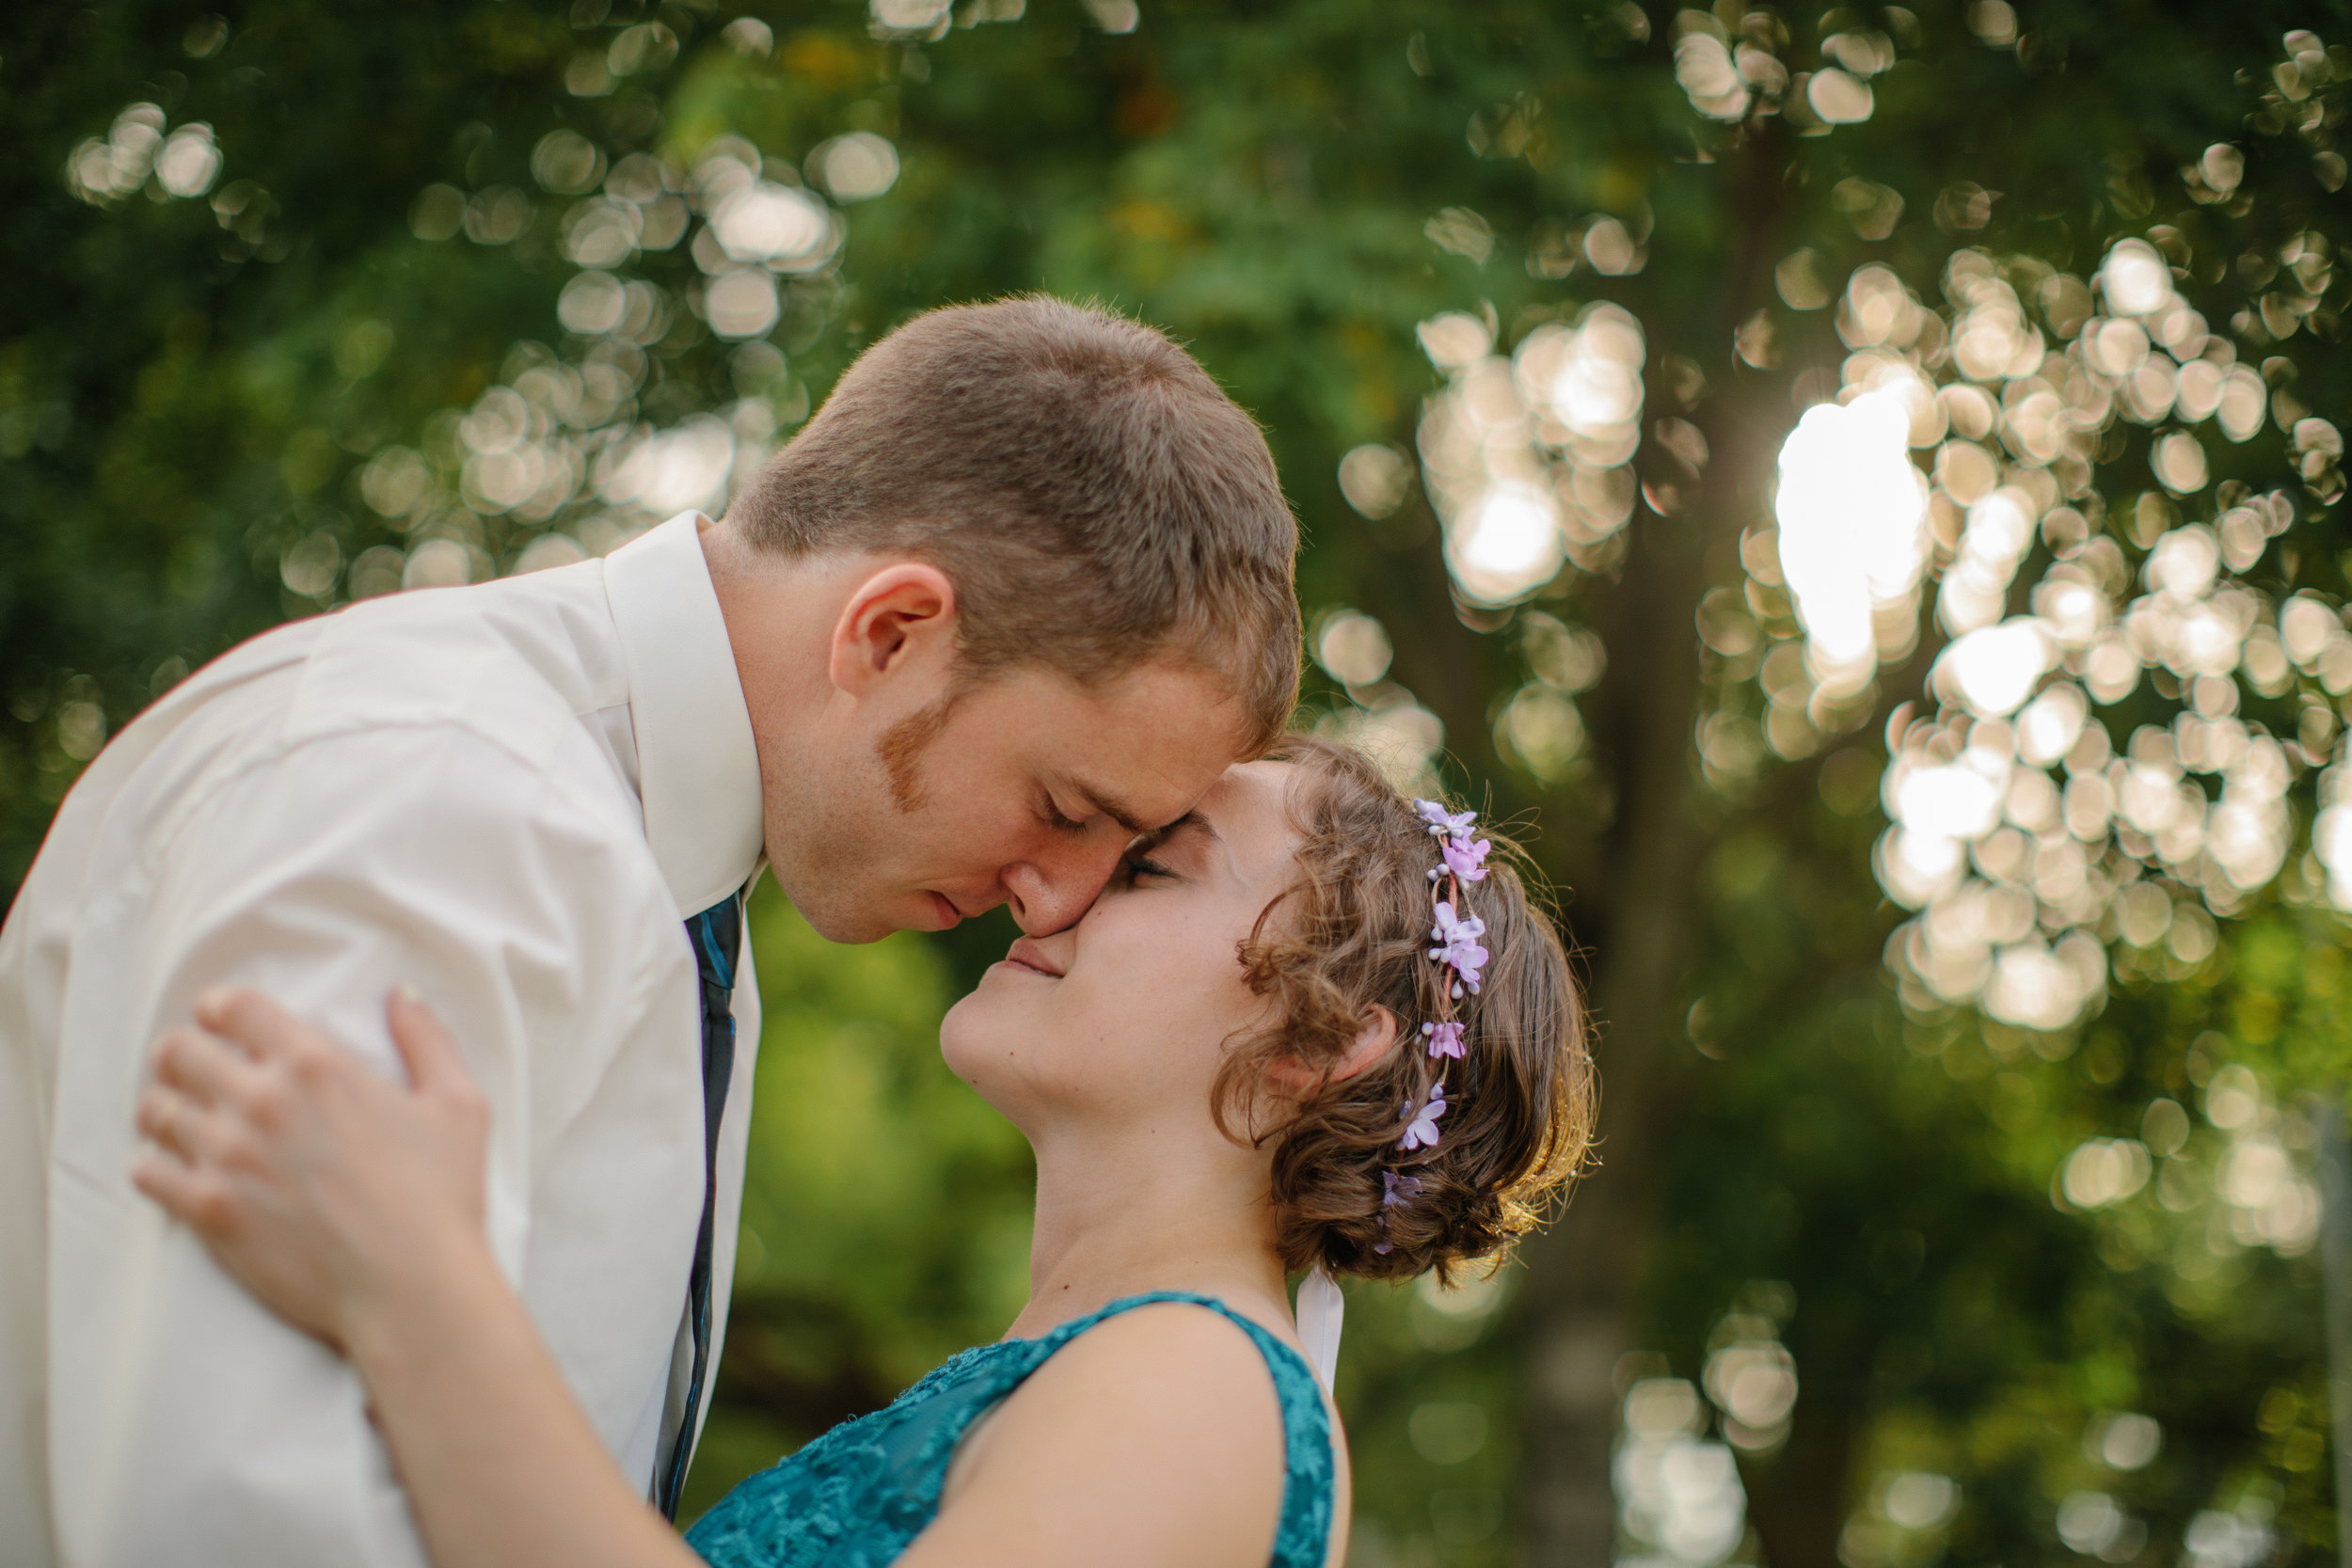 noses together bride and groom flower crown wedding day